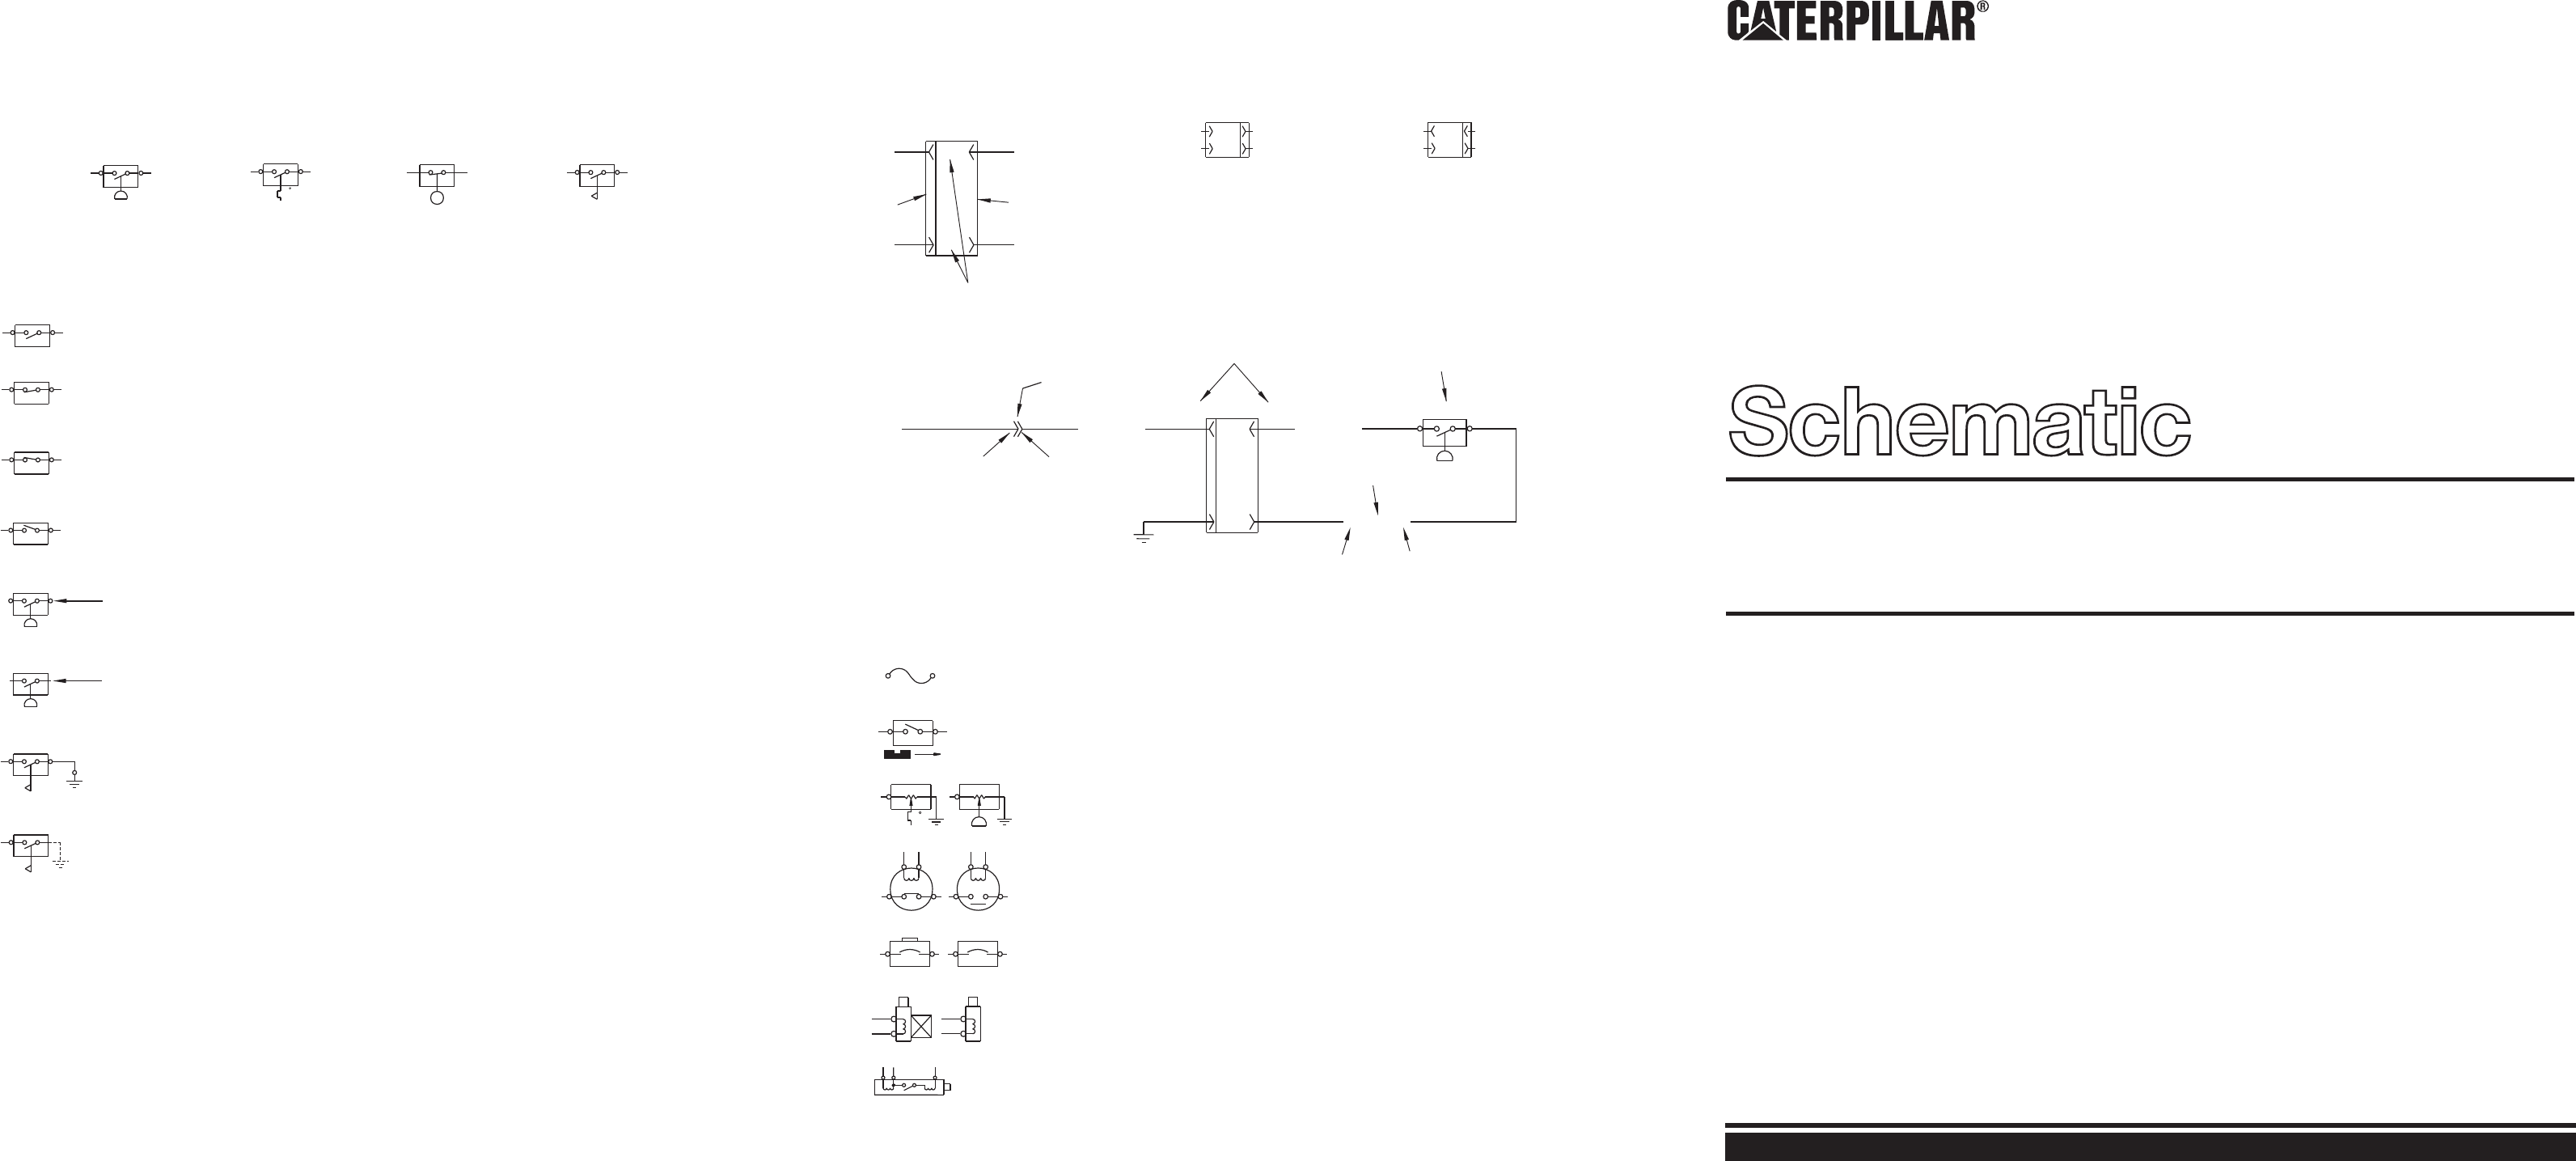 CP-323C & CS-323C VITORY COMPACTOR ELECTRICAL SCHEMATIC | CAT ... on